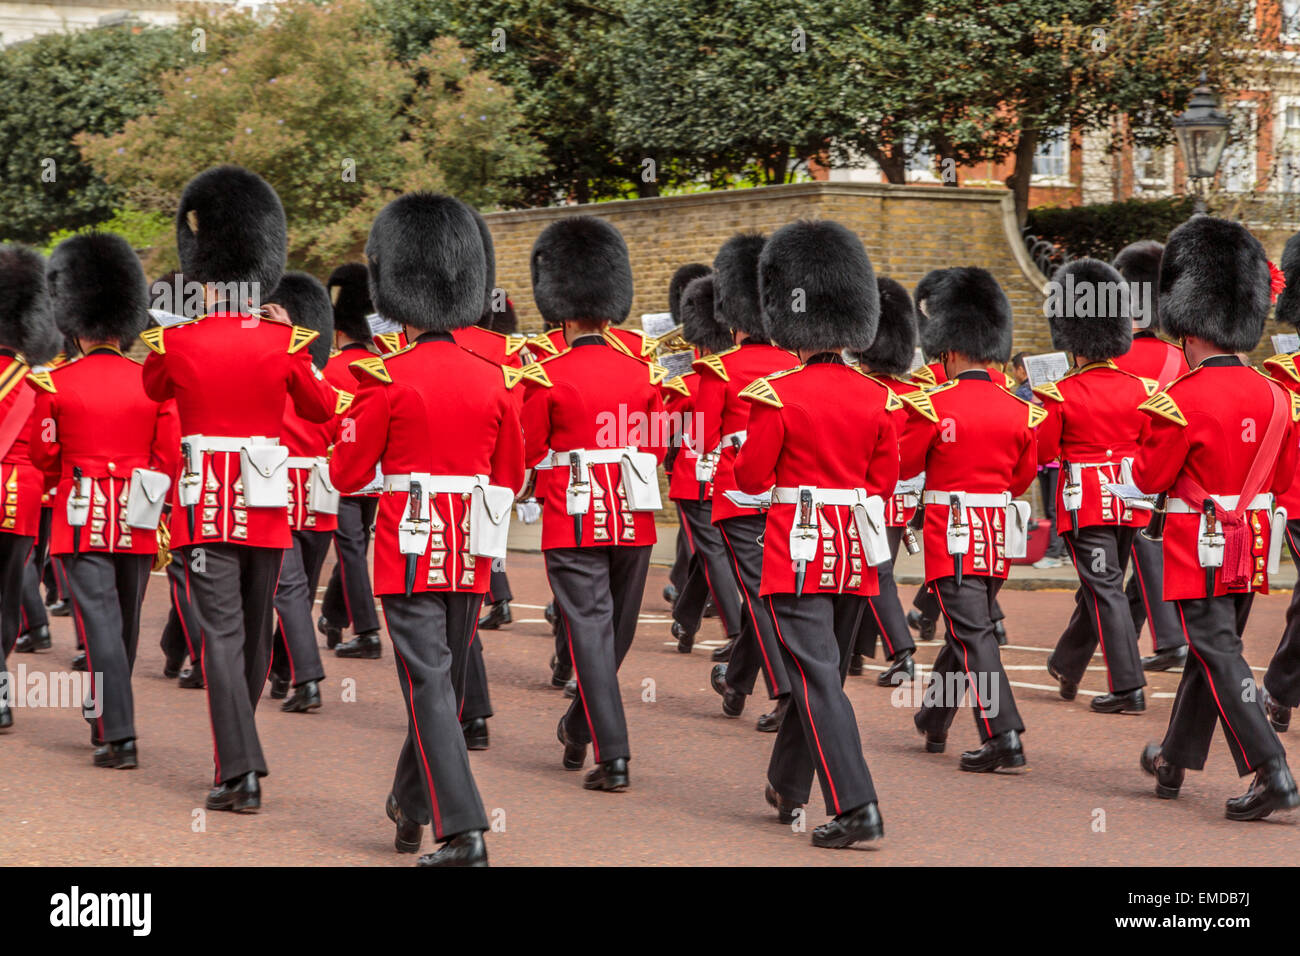 An image of The Regimental Band of the Coldstream Guards marching toward St James's Palace - Stock Image